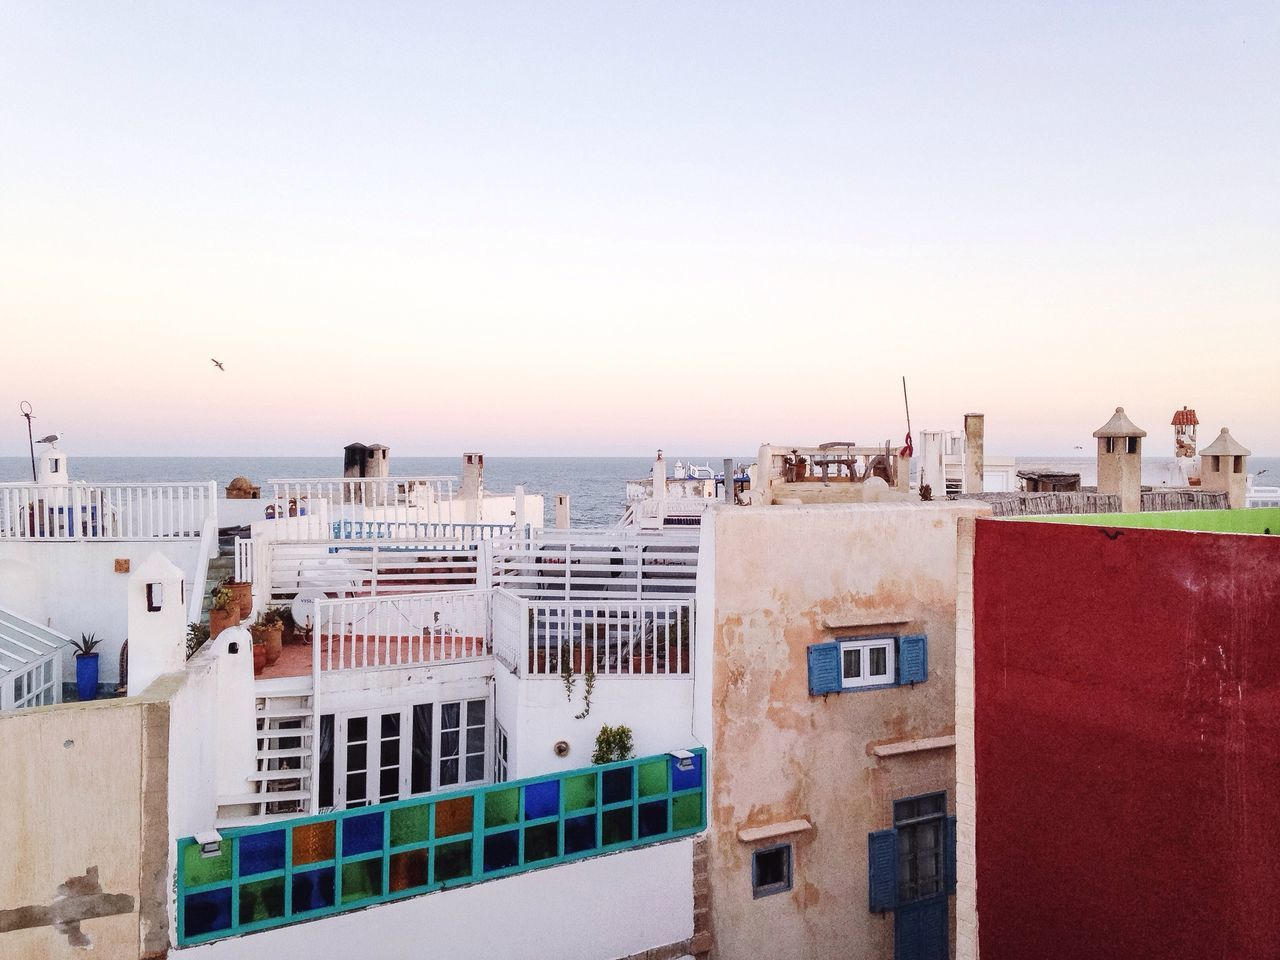 Morning Roof Rooftop Seα Colors Gull Essaouira Morocco Travel Traveling